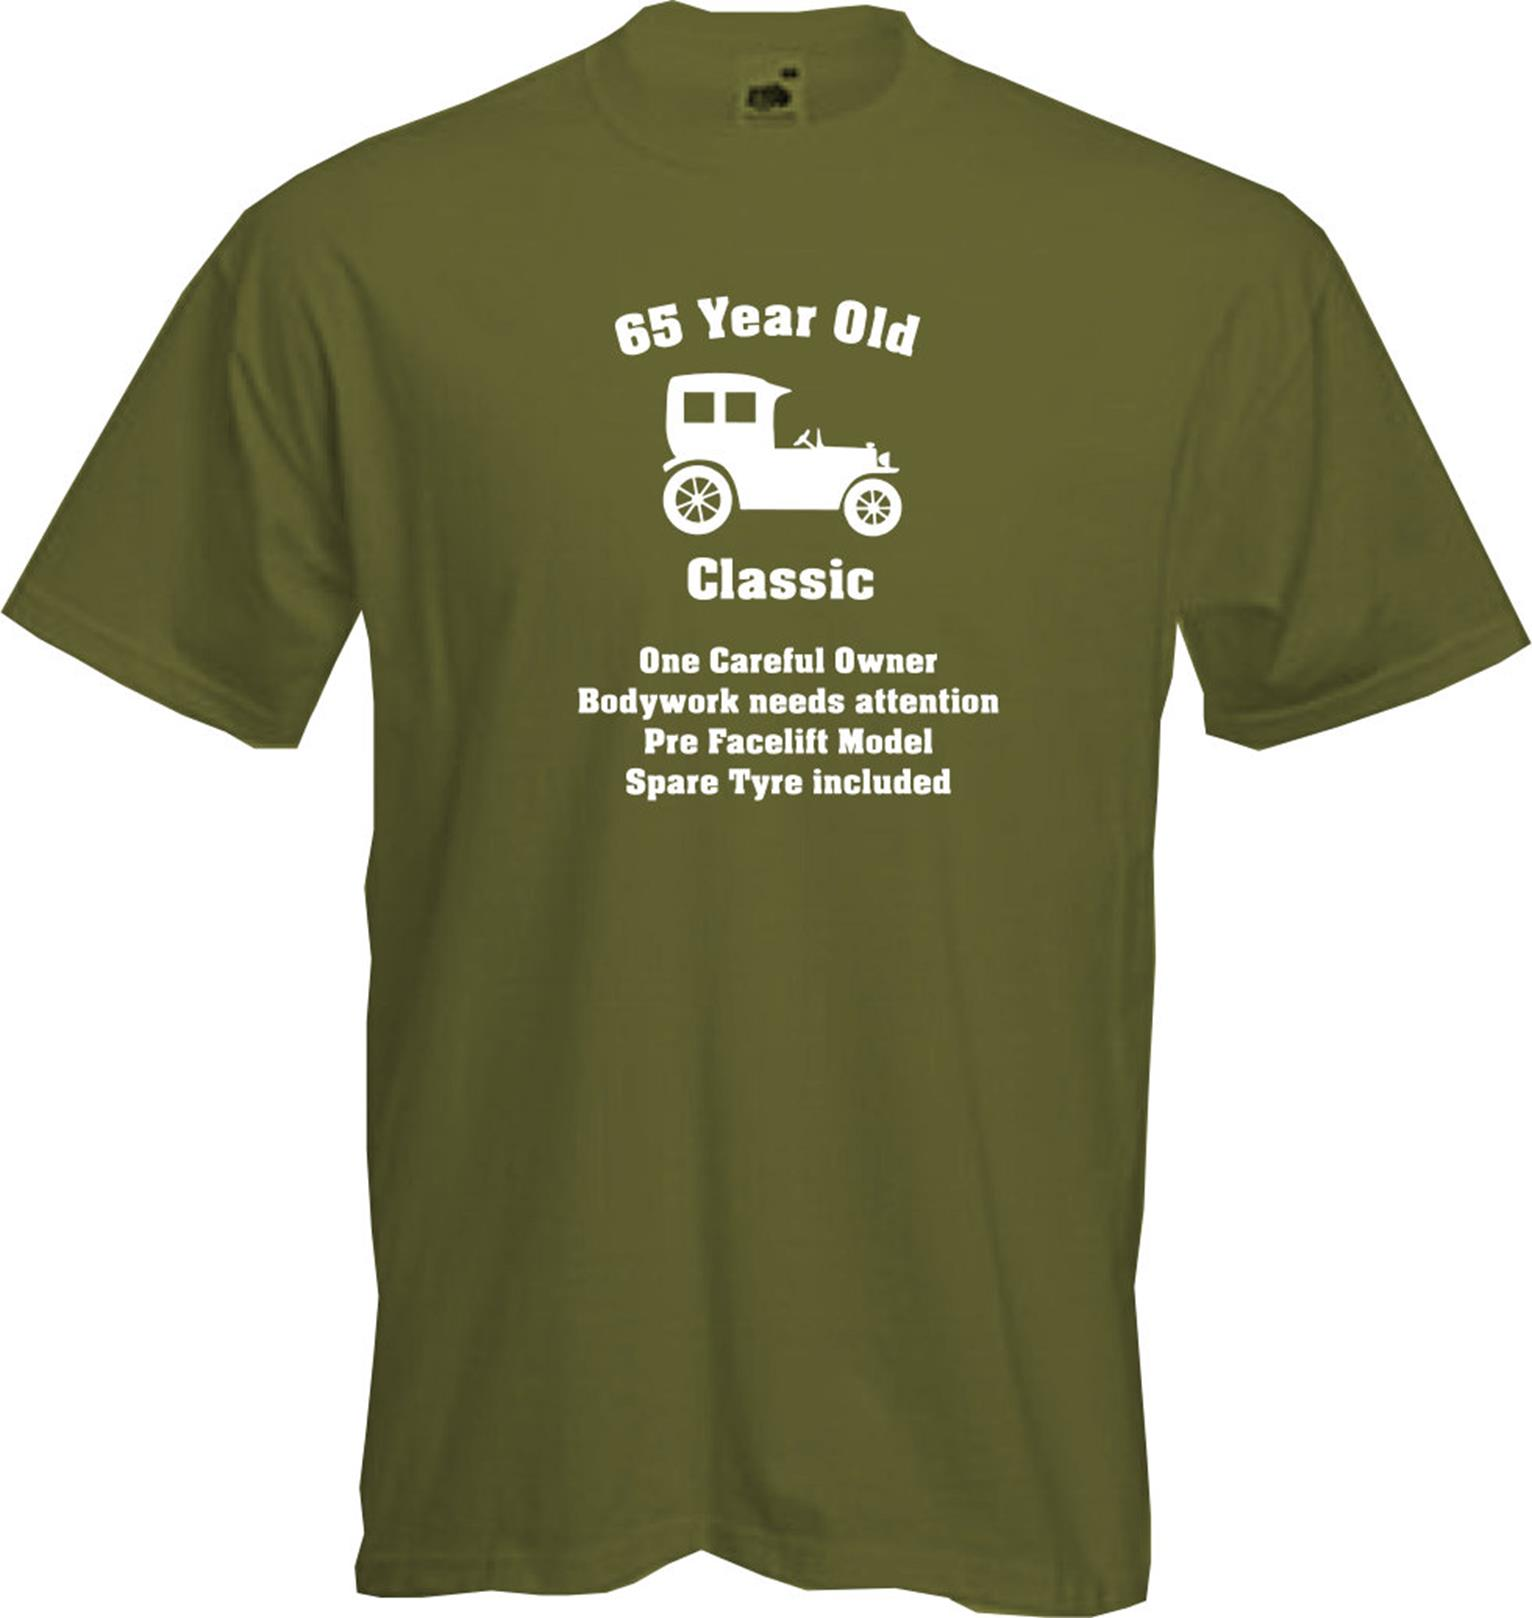 Great T Shirt For A Special Event Or Just To Wear Because It Looks Good